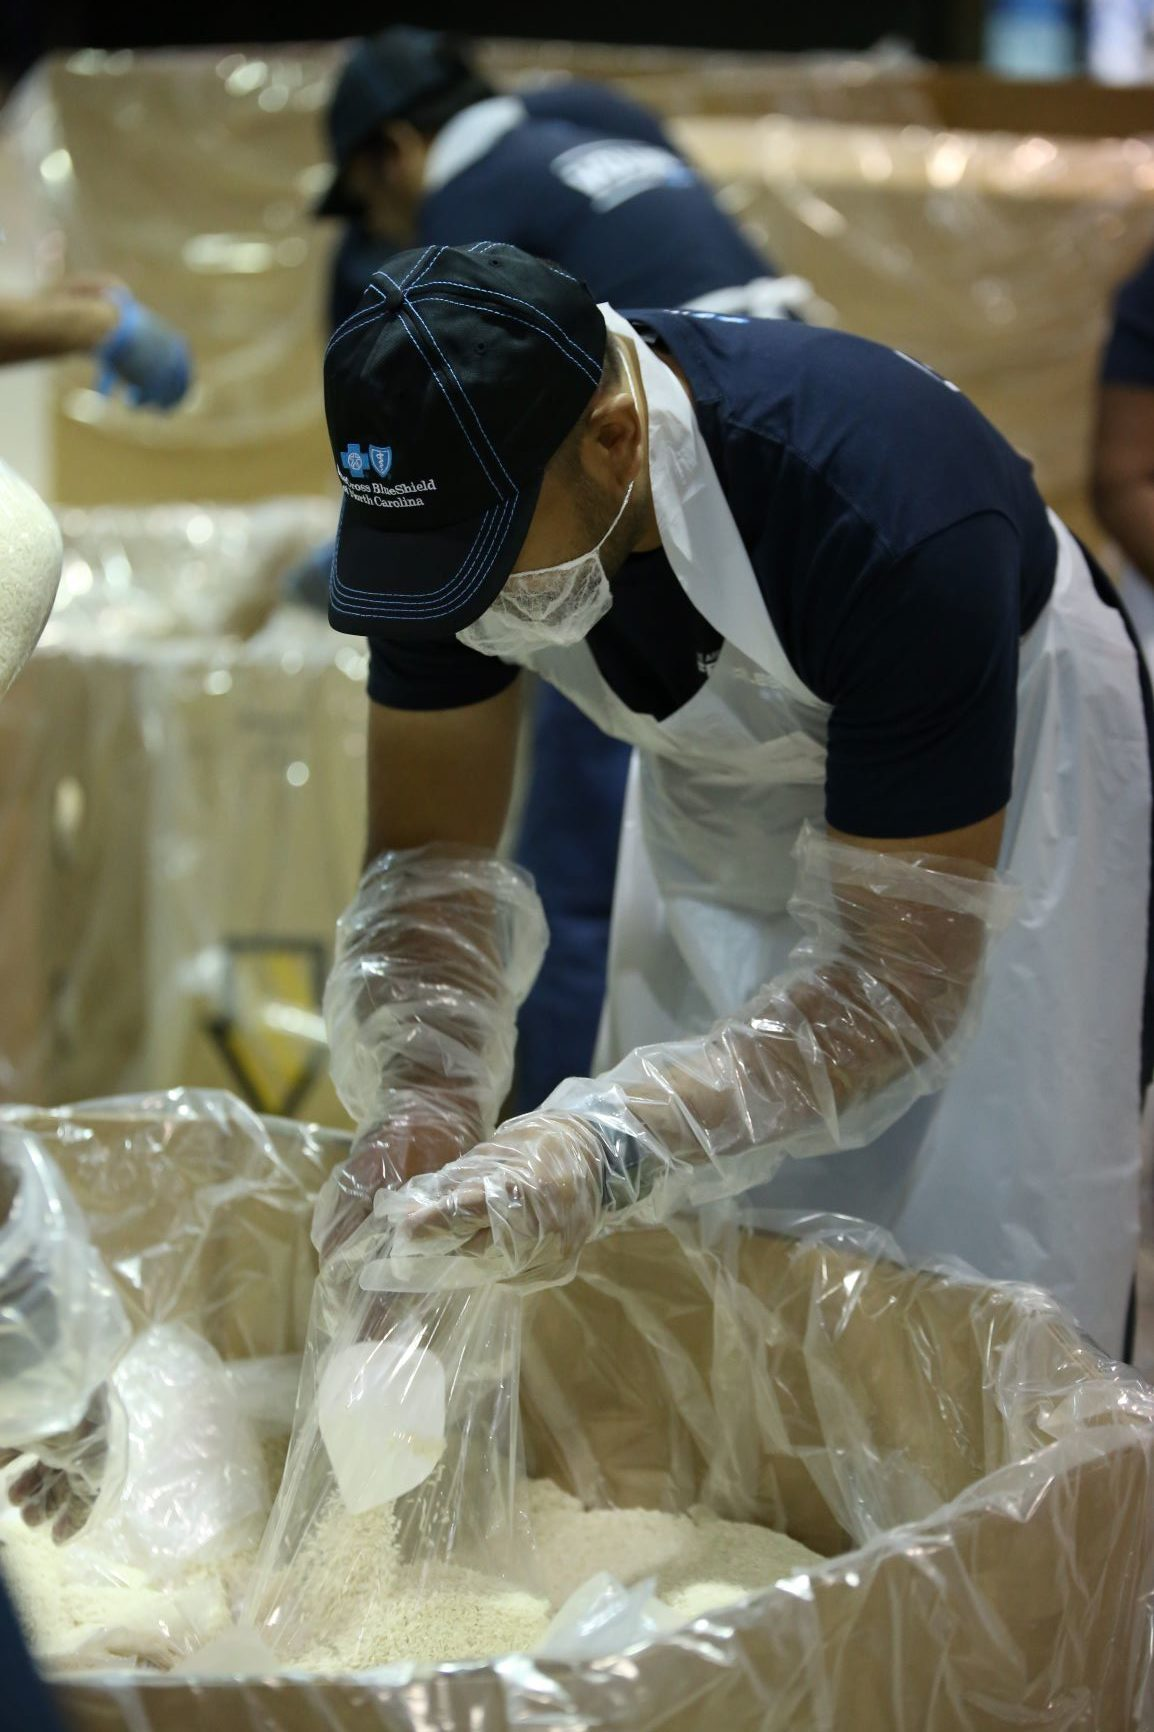 Blue Cross NC volunteer works at food bank